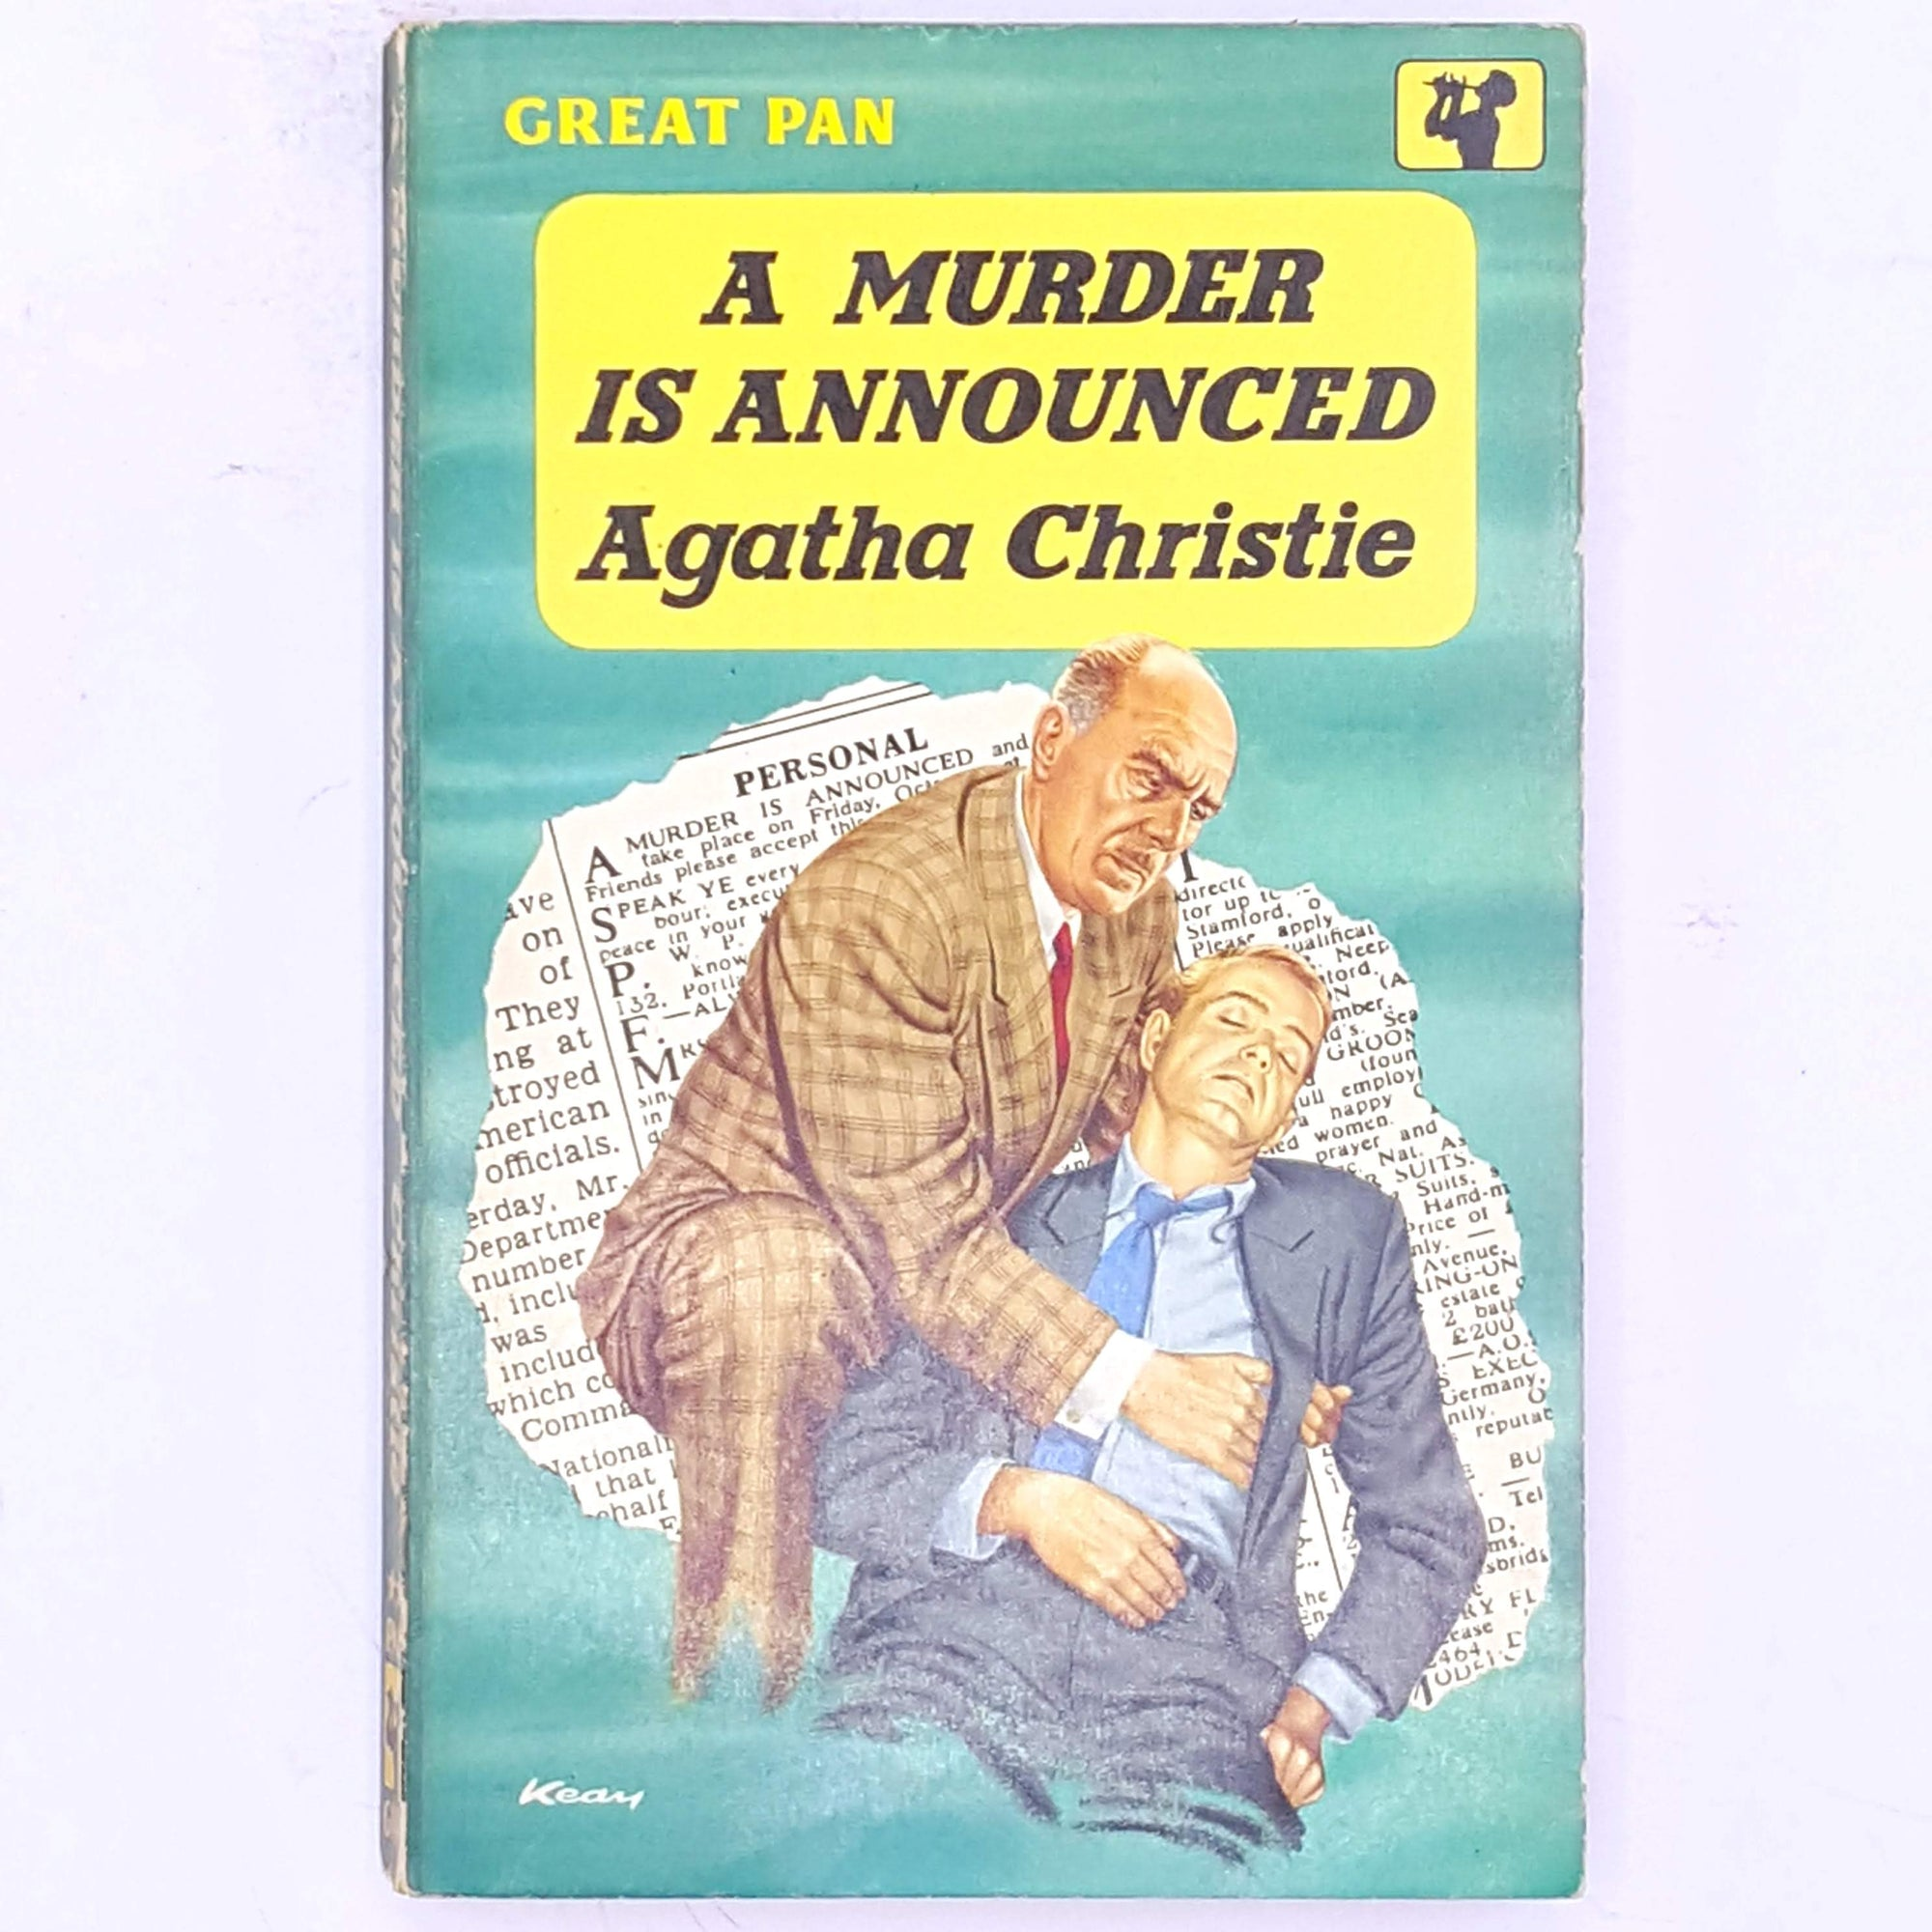 Agatha Christie's A Murder is Announced